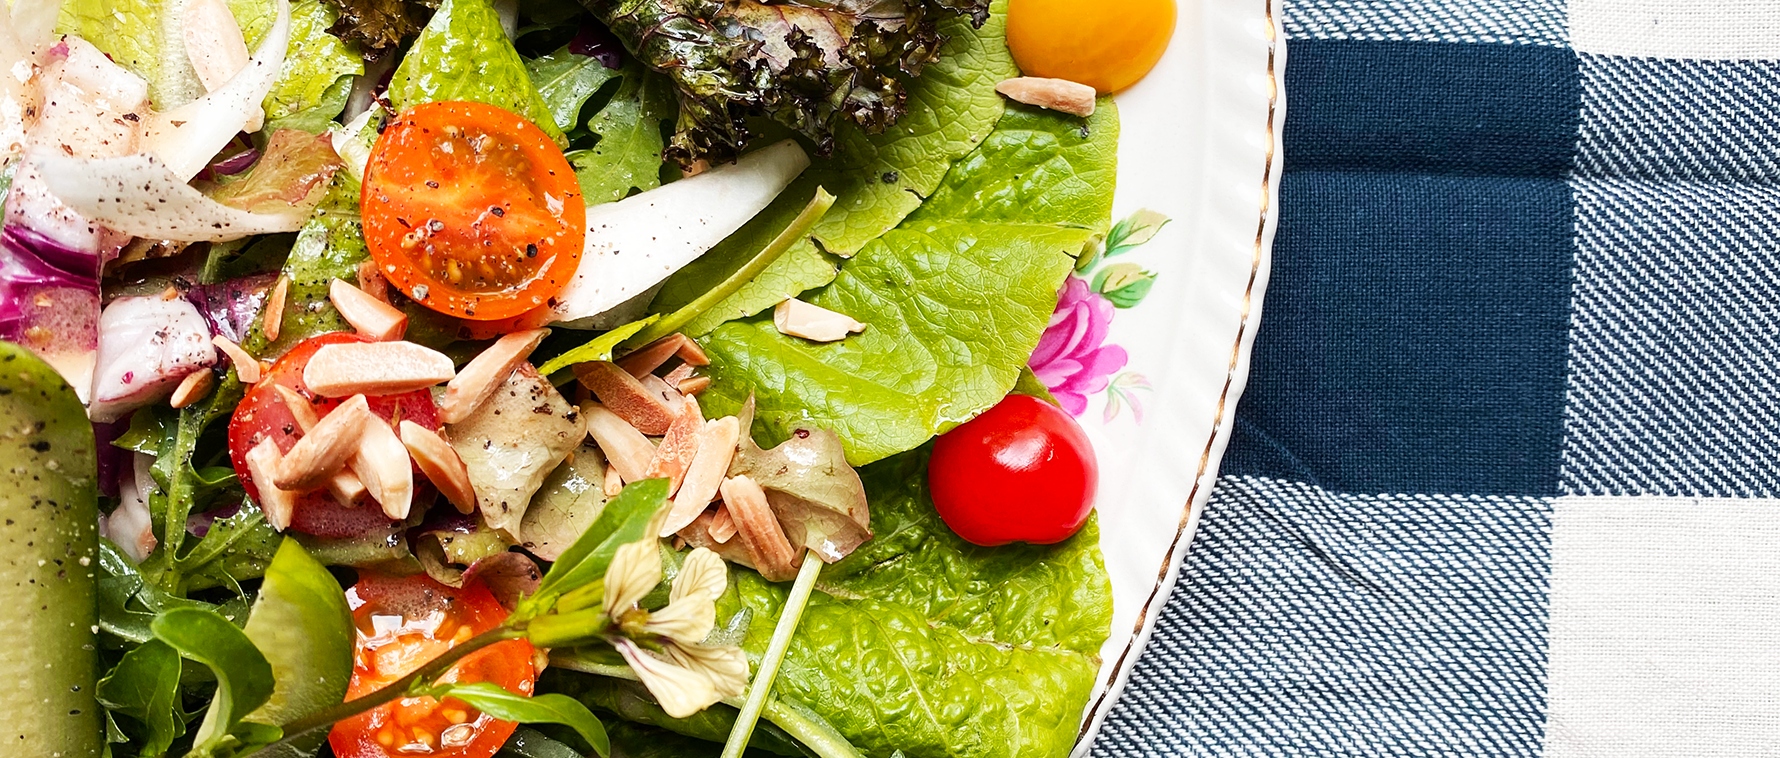 front_salade_chef